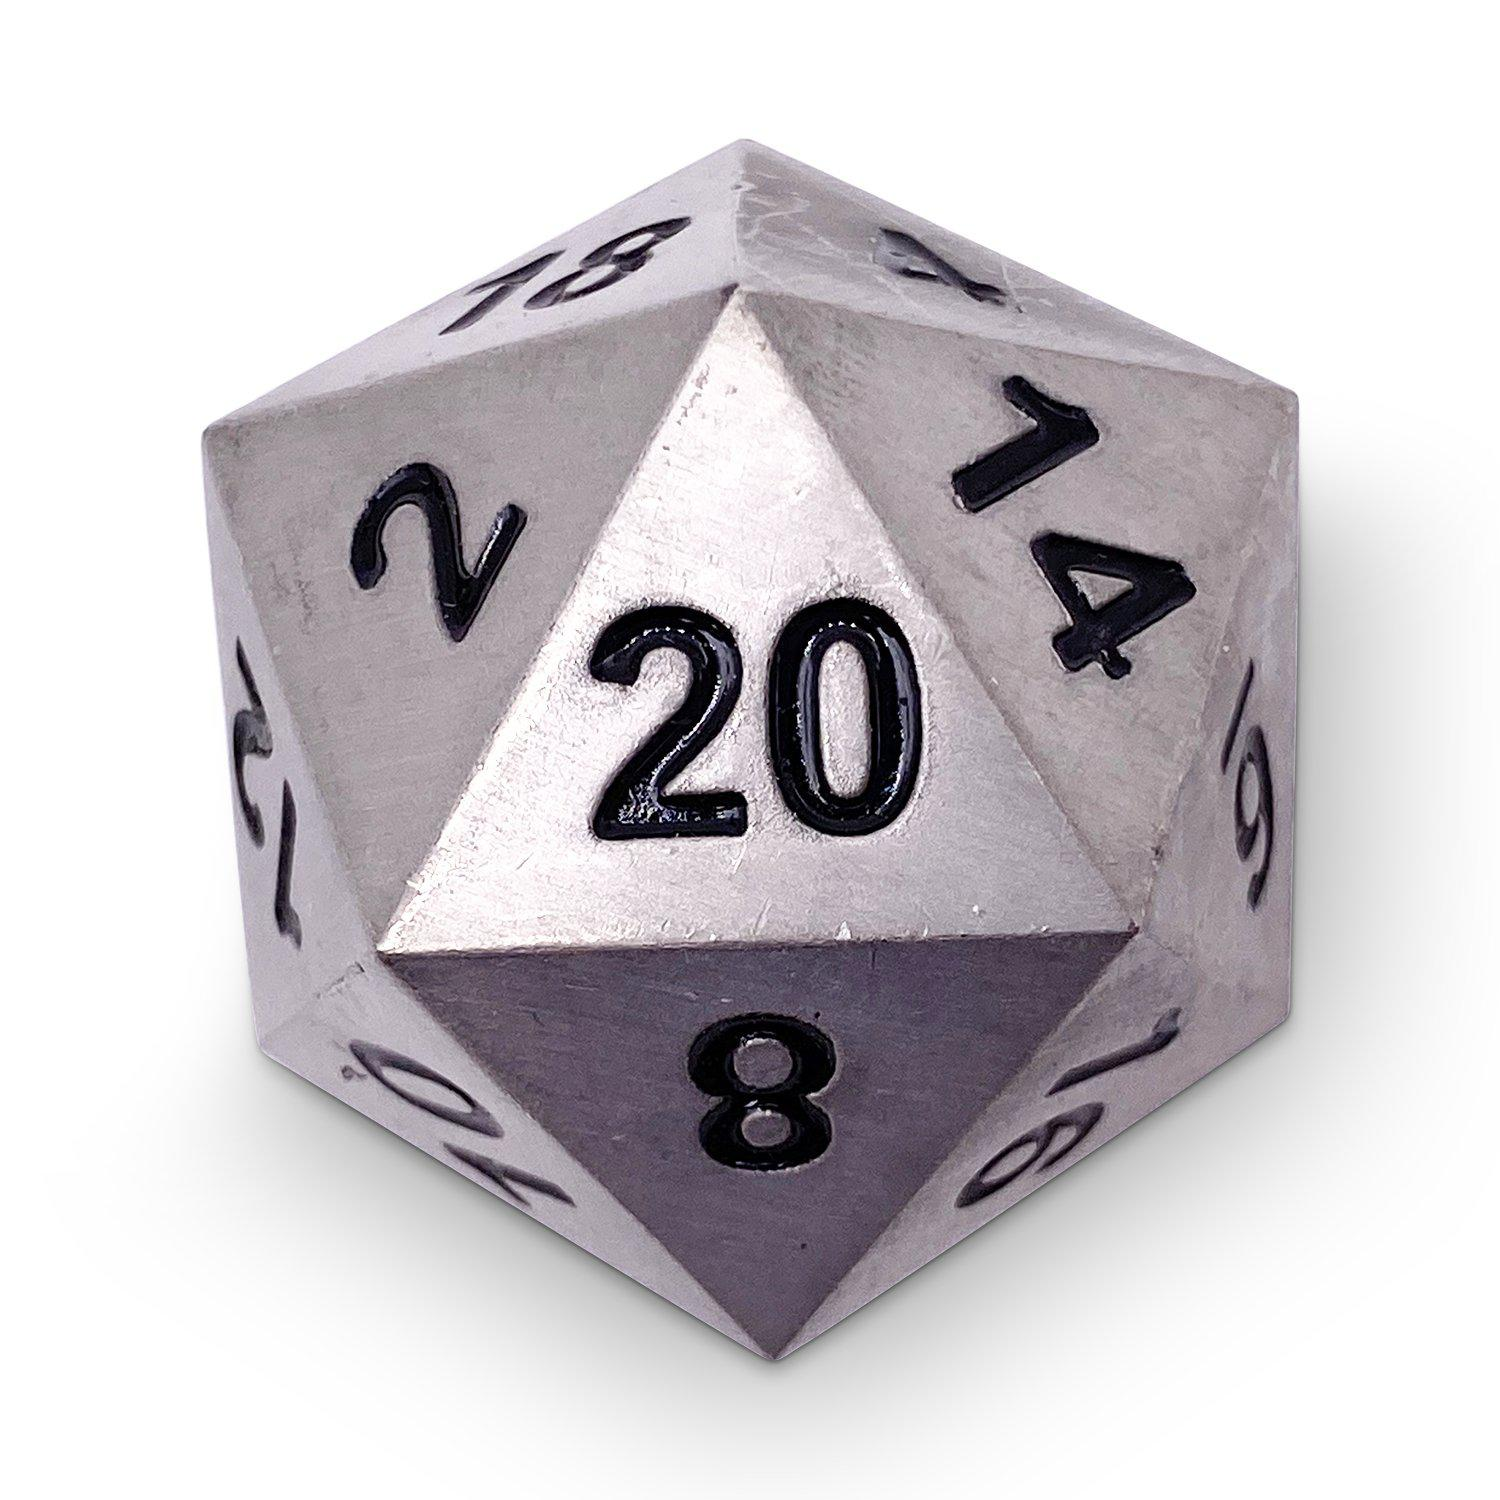 Aged Mithiral Boulder 45mm D20 Metal Dice Norse Foundry During the lockdown over the summer we have been busy renovating the foundry. aged mithiral boulder 45mm d20 metal dice